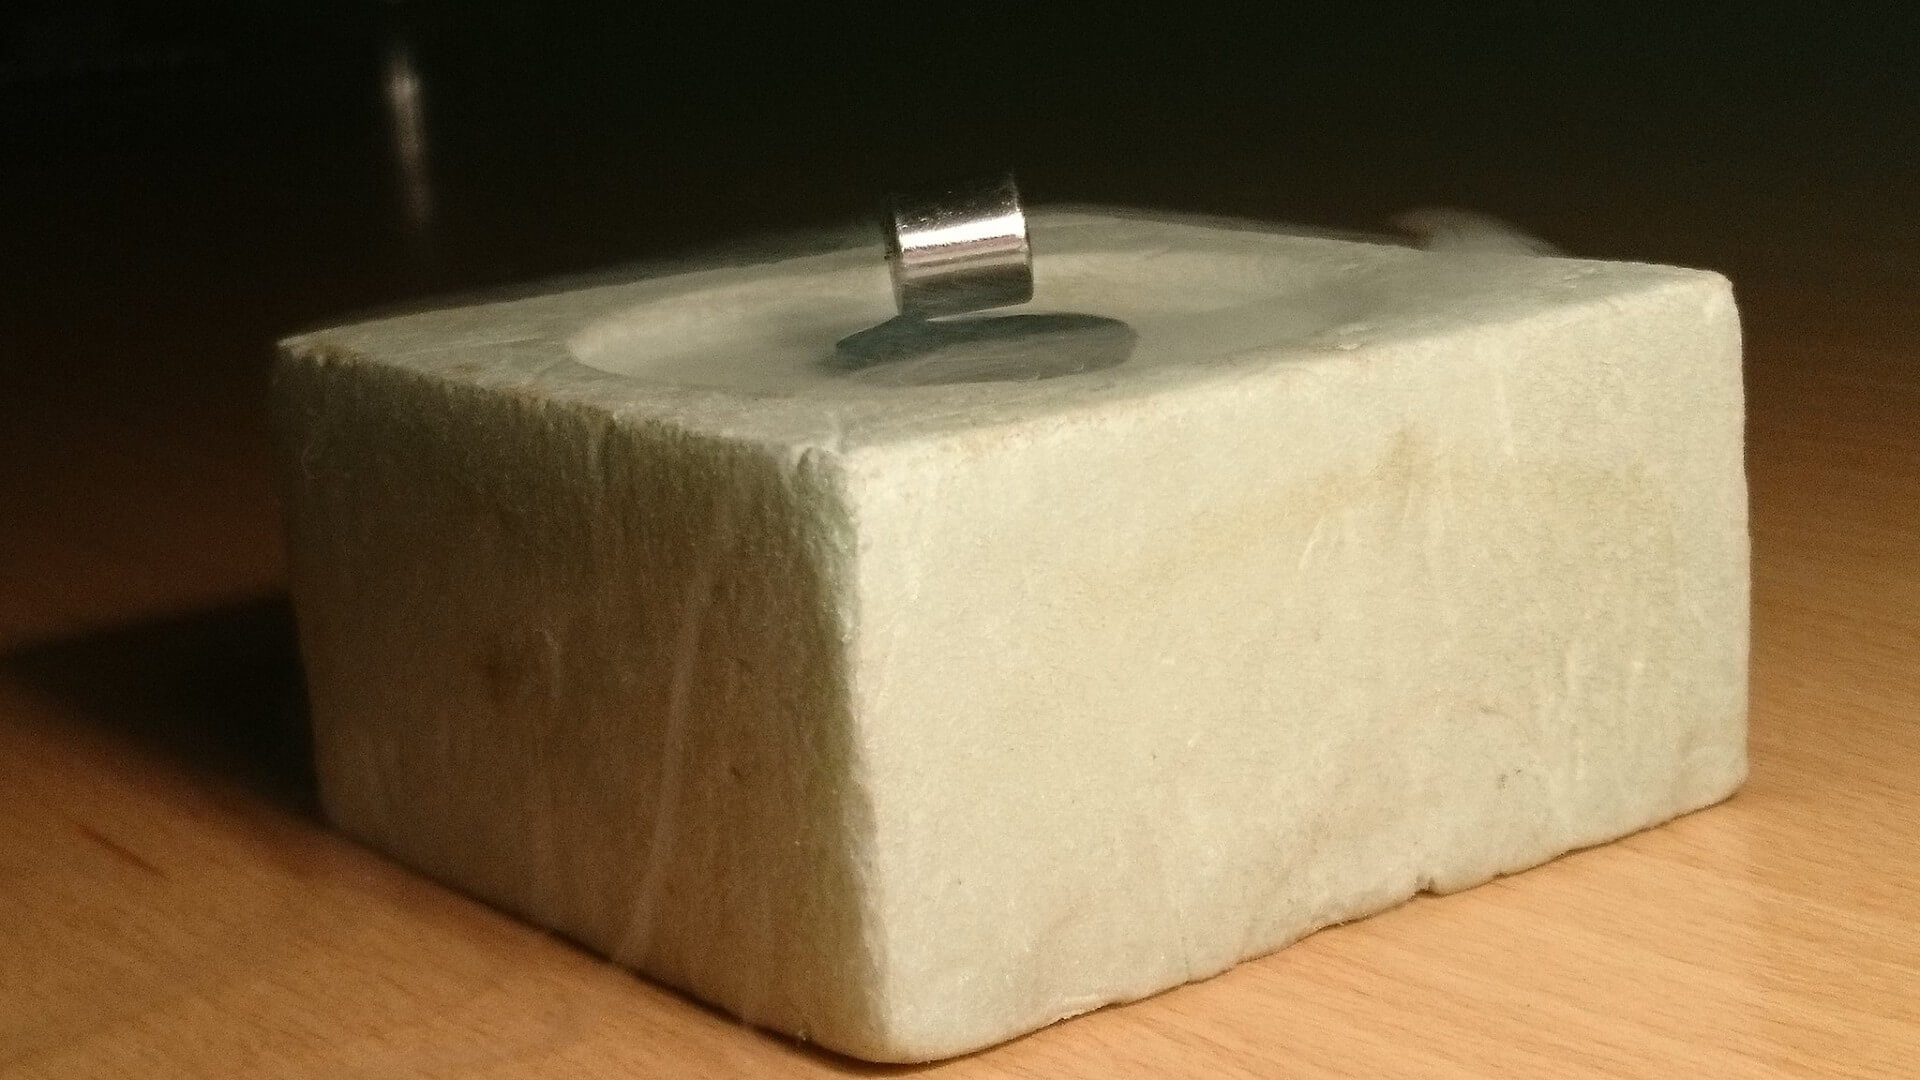 superconductor in action